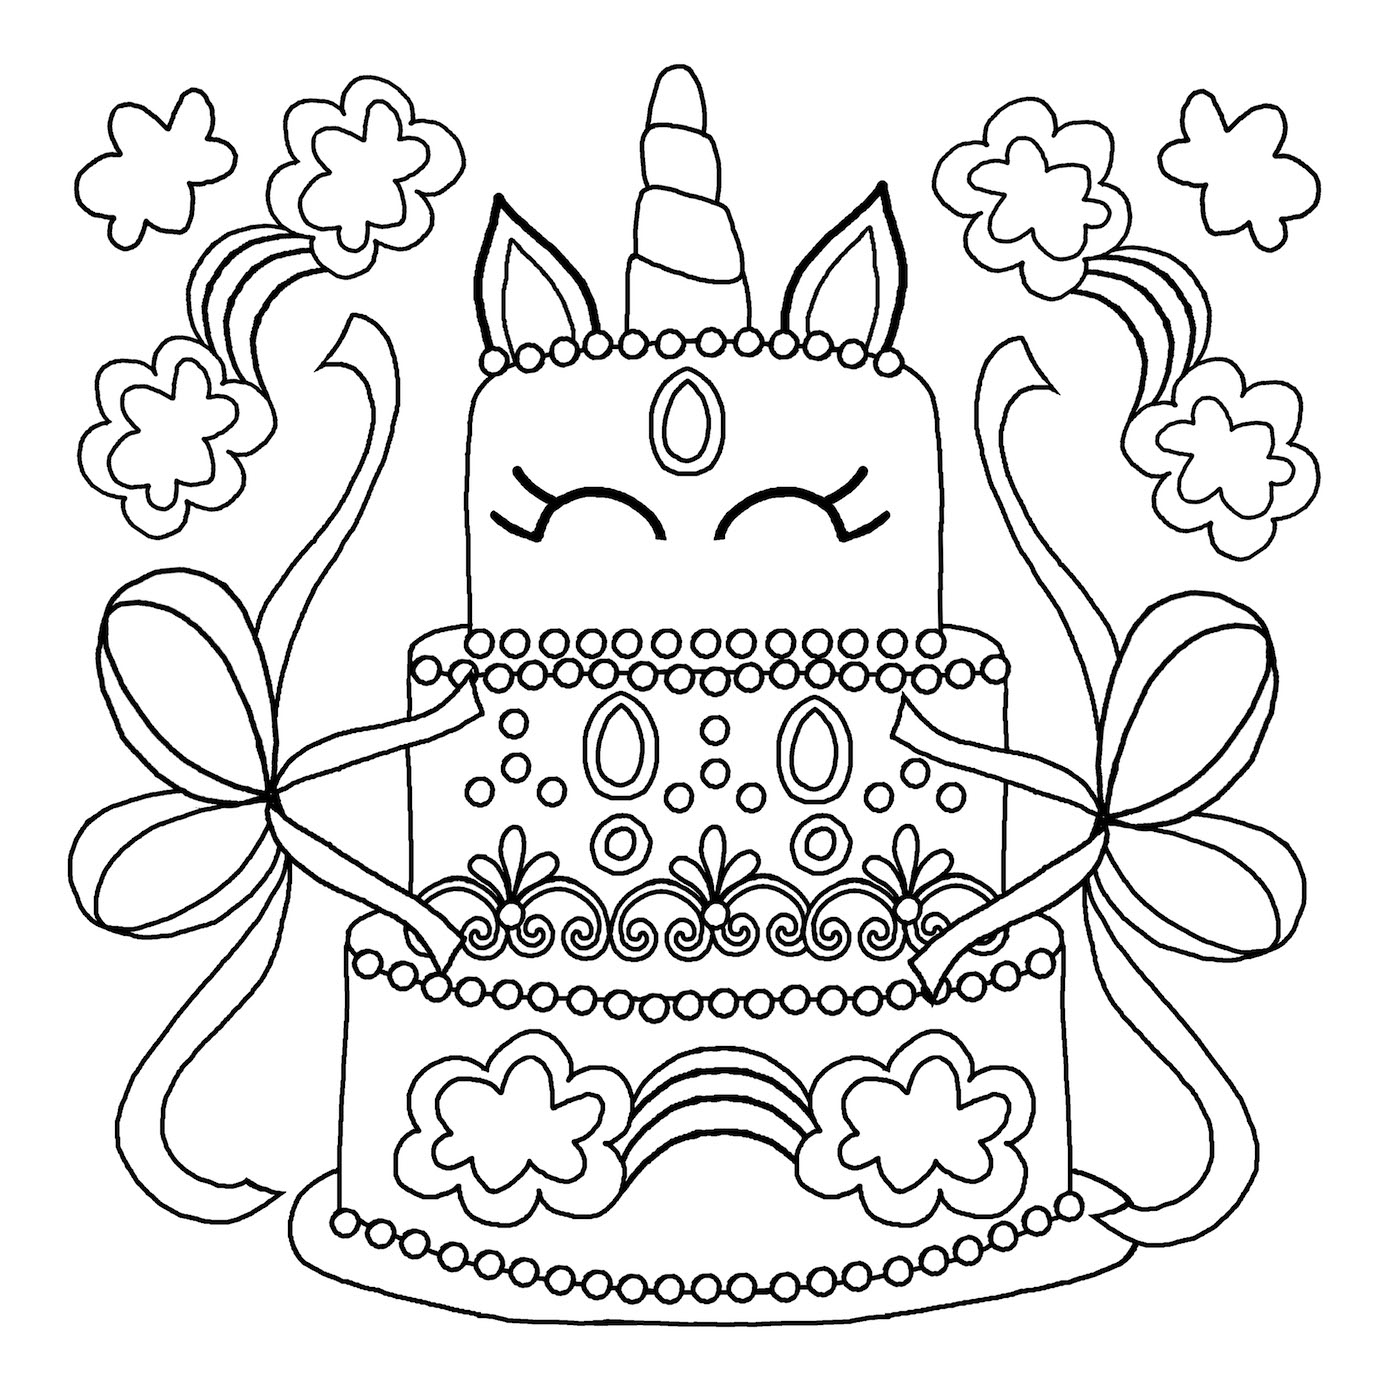 unicorn food coloring pages 75 magical unicorn coloring pages for kids adults free unicorn pages food coloring